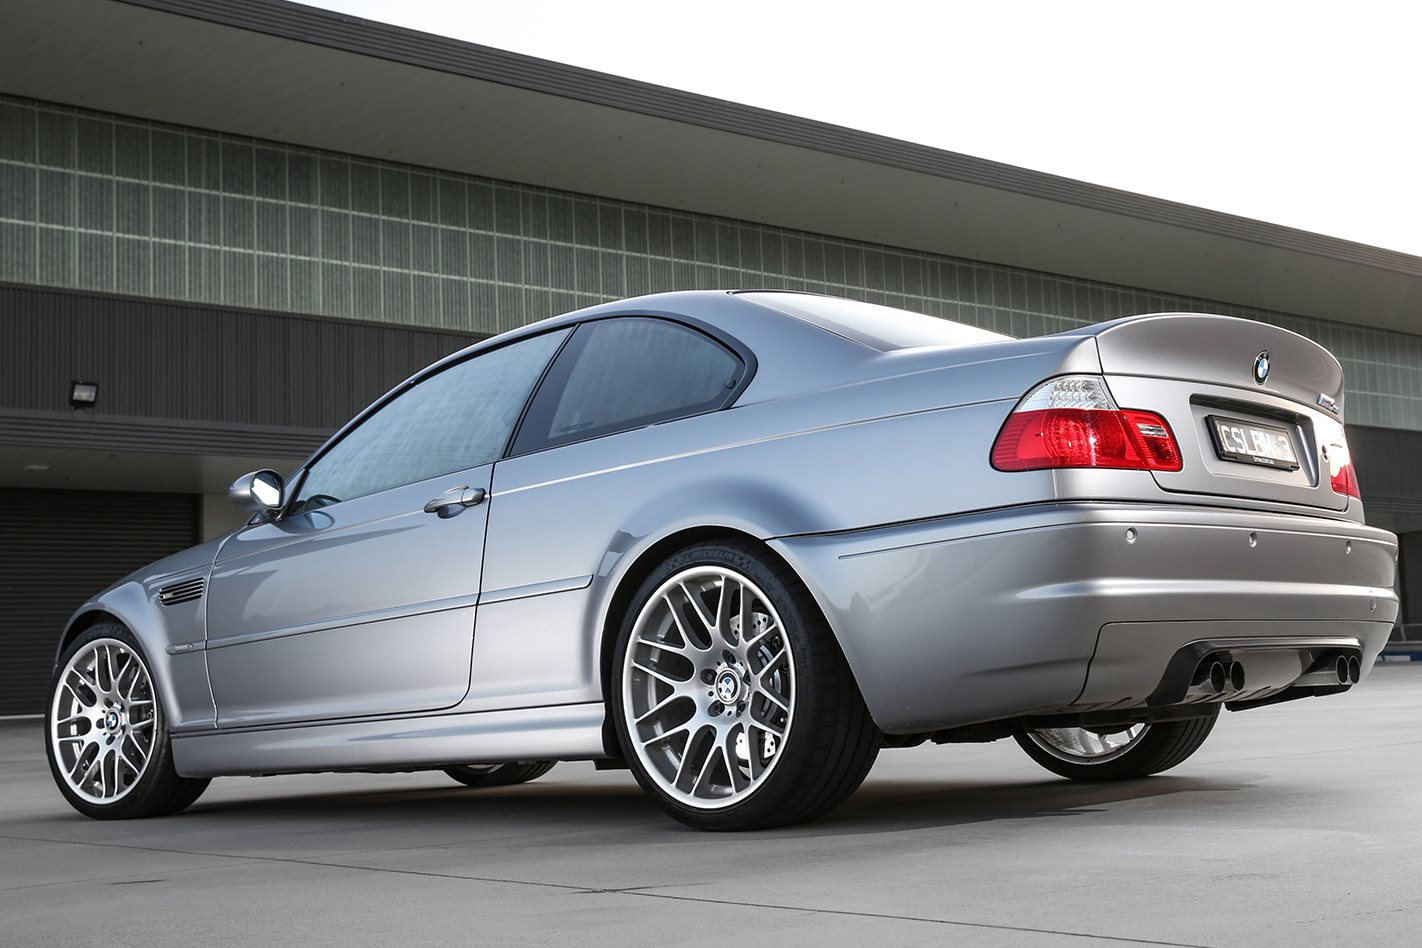 30 Years Of Bmw M3 E46 Csl